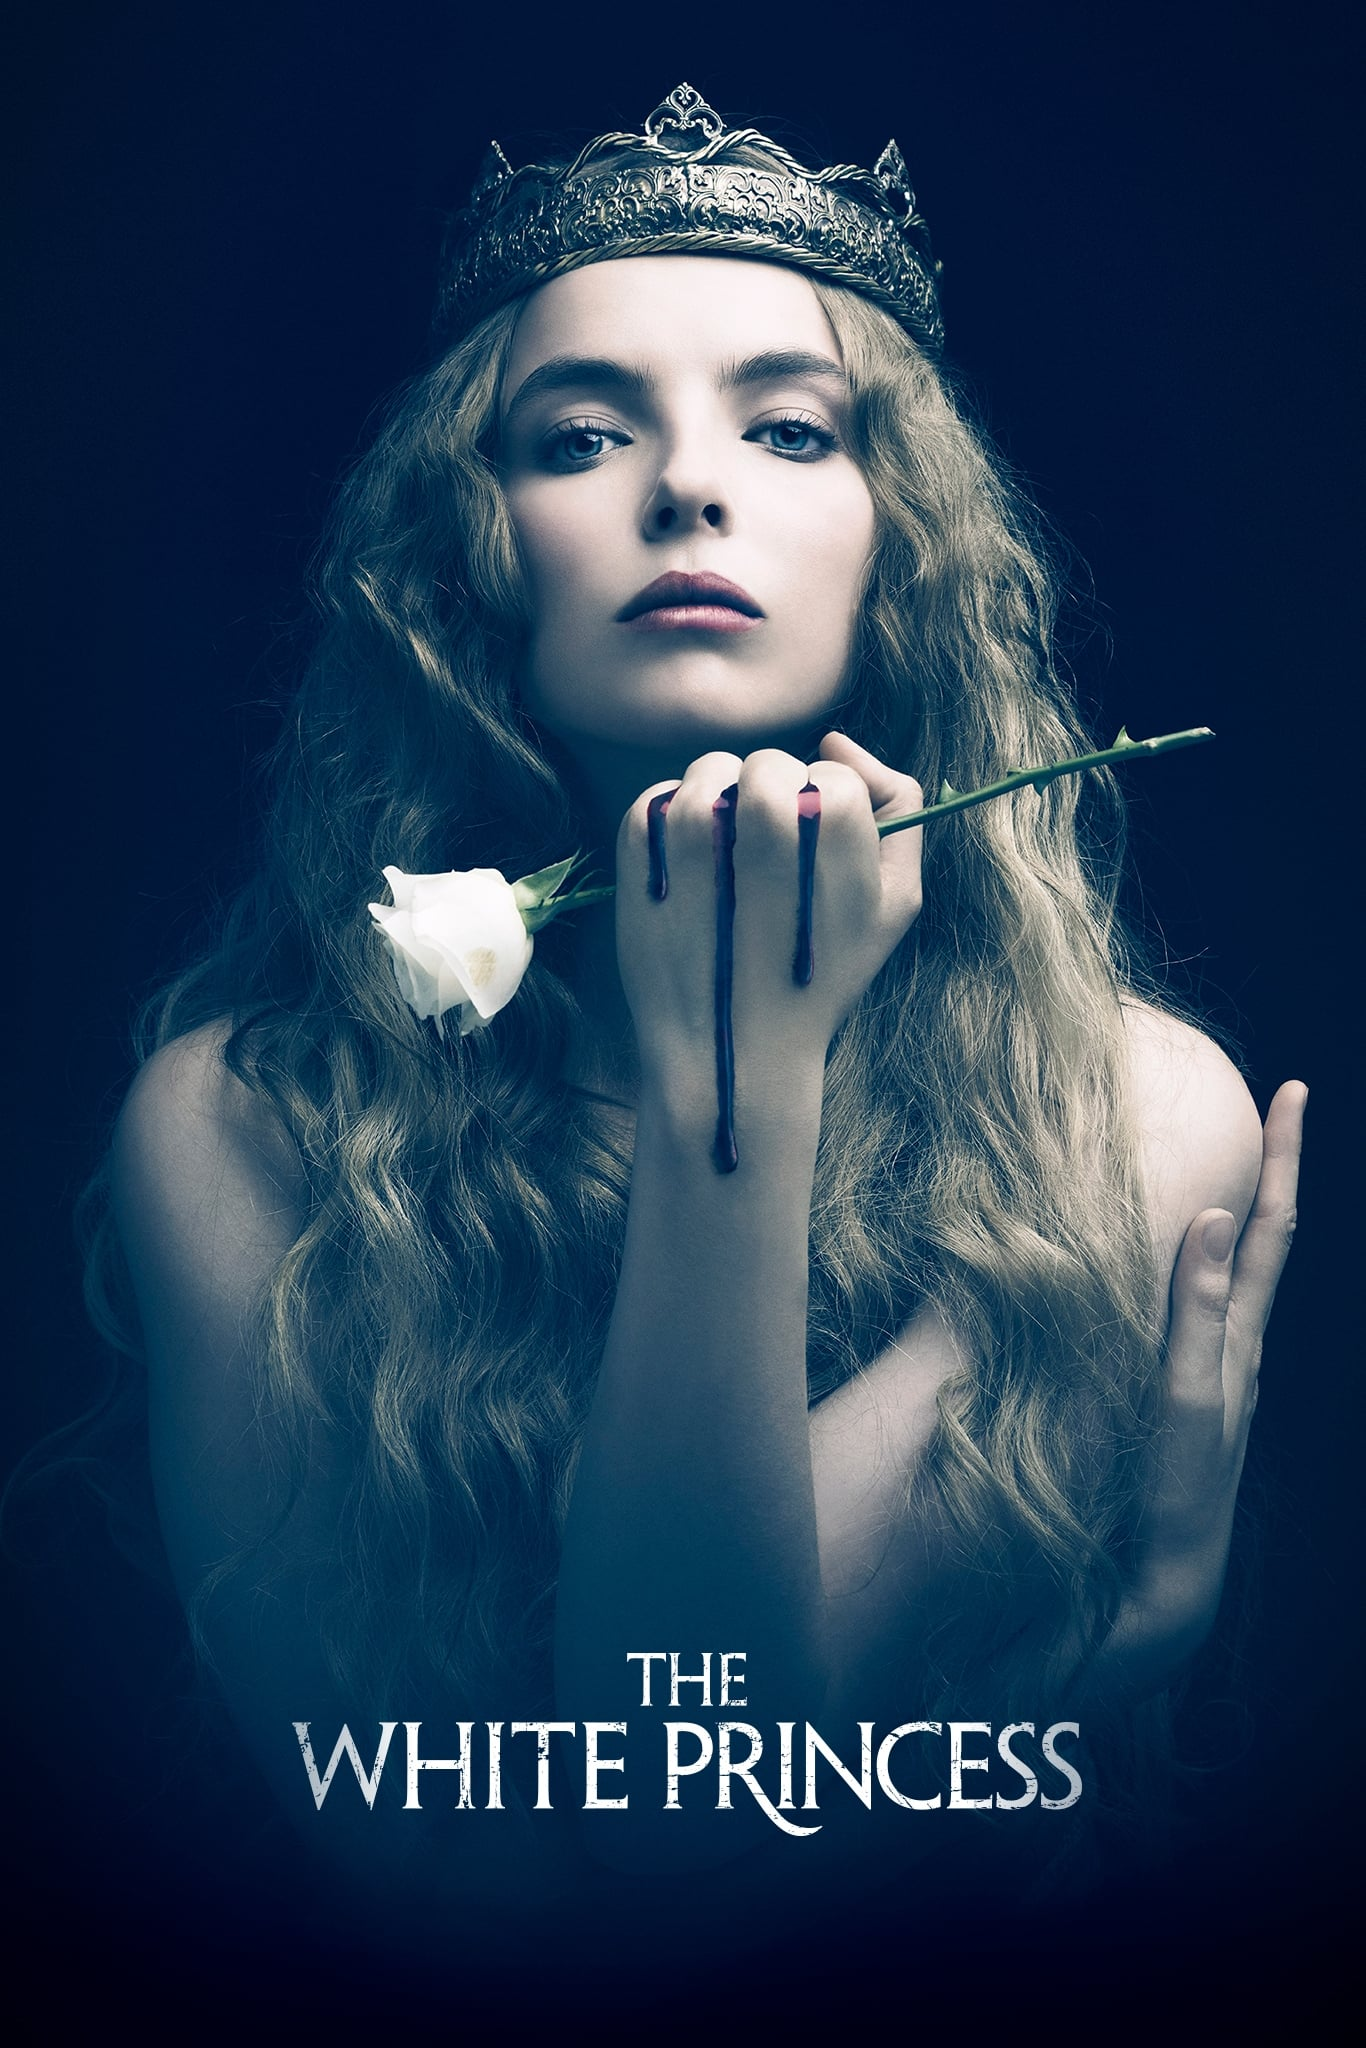 The White Princess Poster